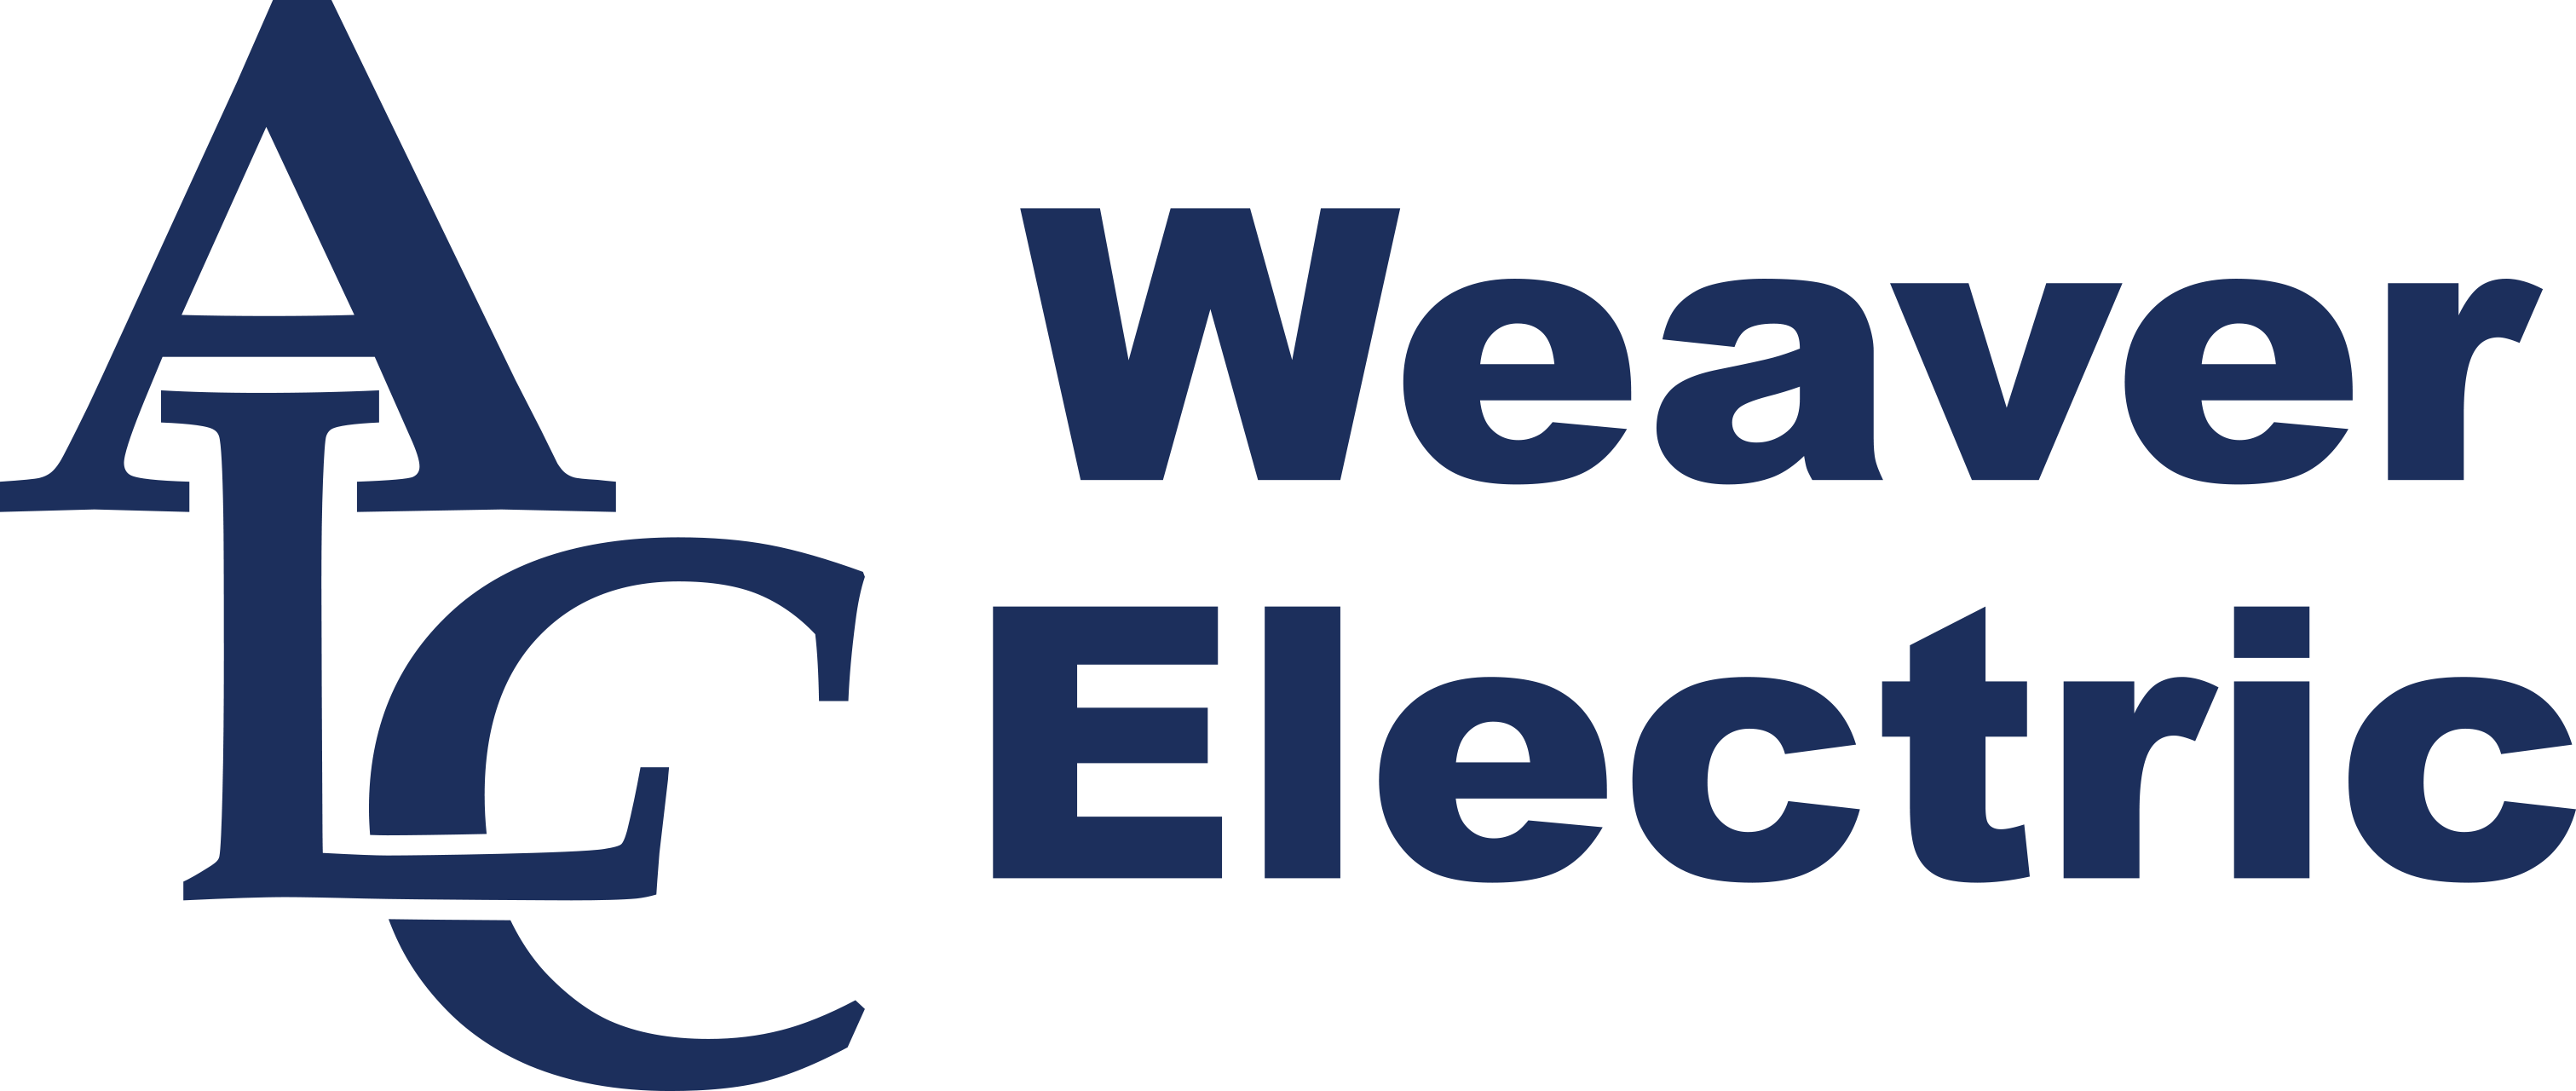 ALC Weaver Electric Logo